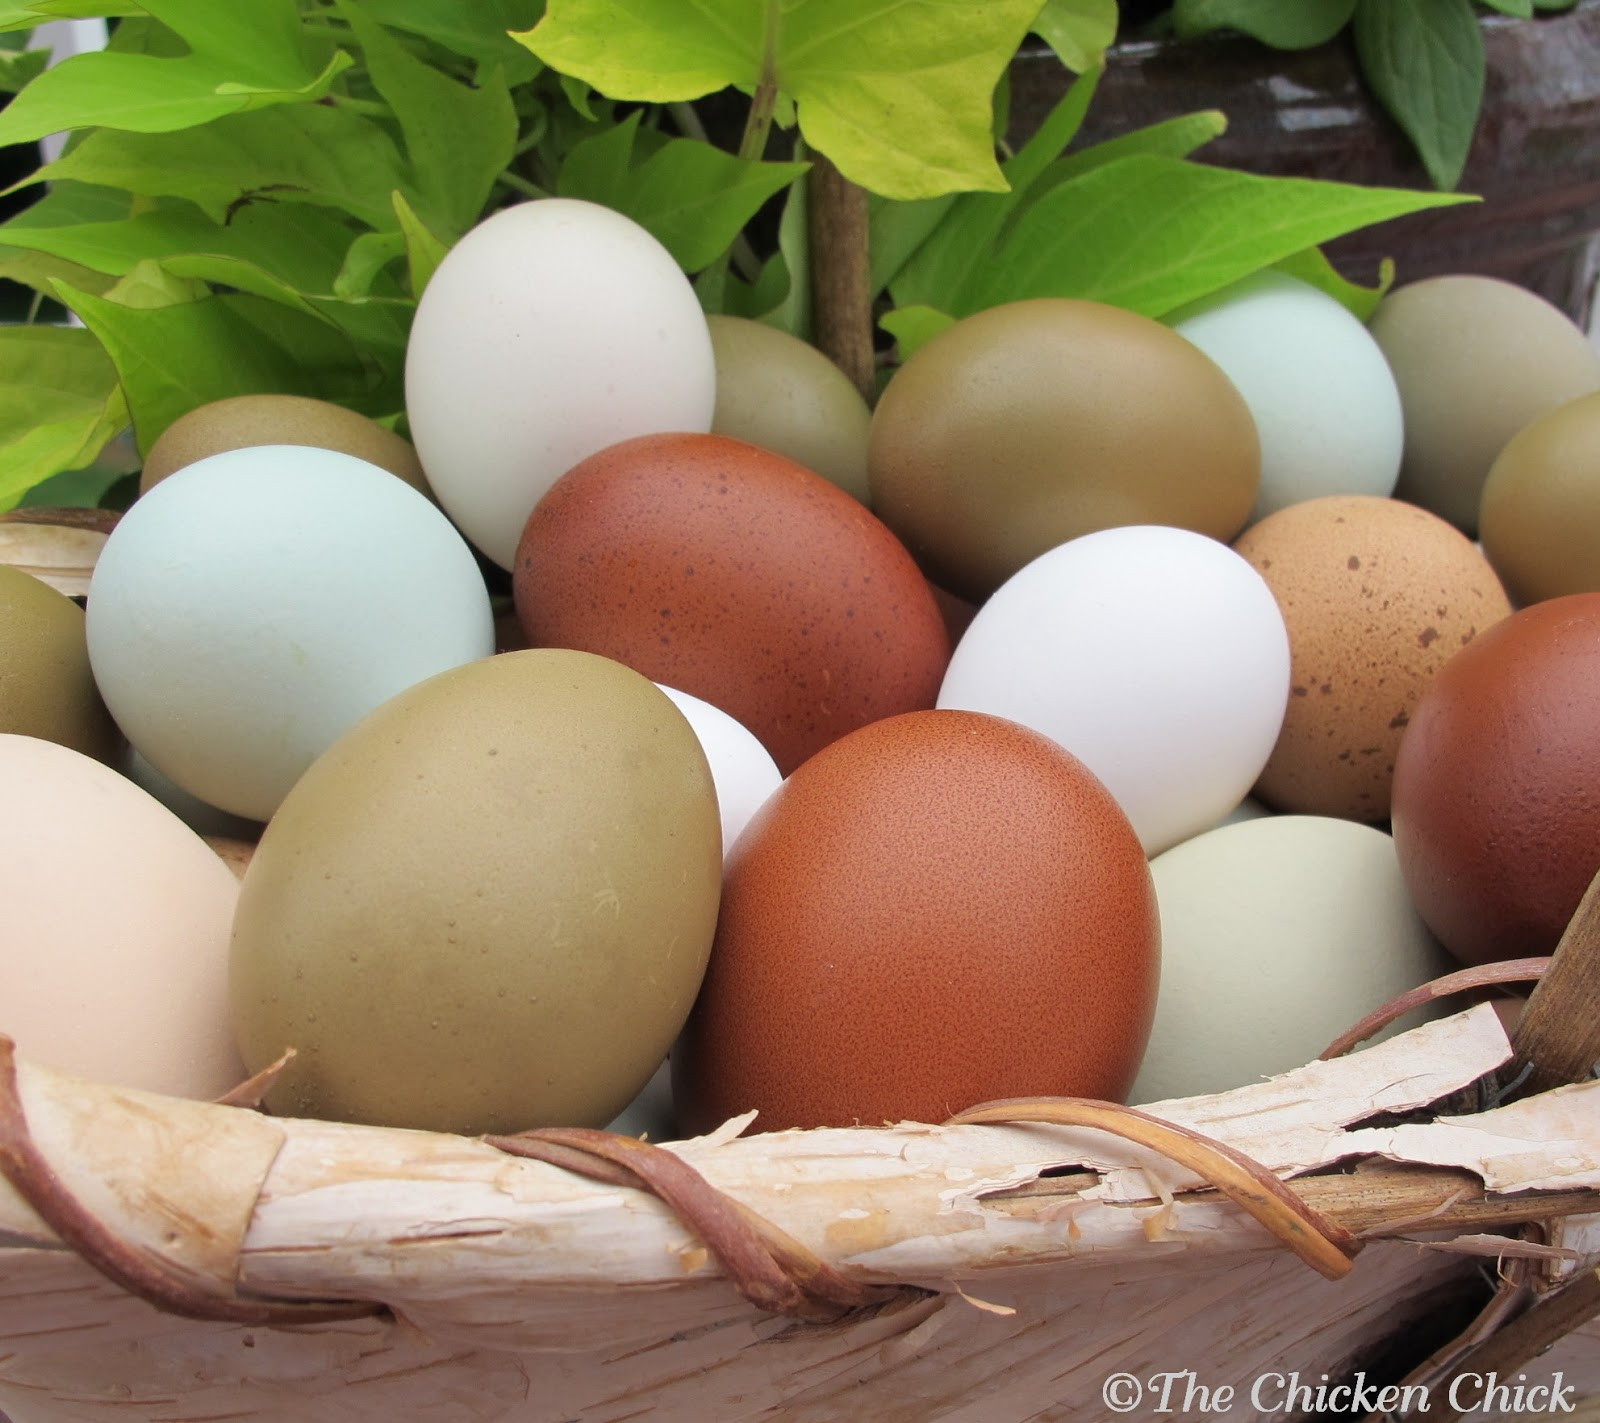 Chickens For Eggs In Backyard The Chicken Chick 174 8 Tips For Clean Eggs From Backyard